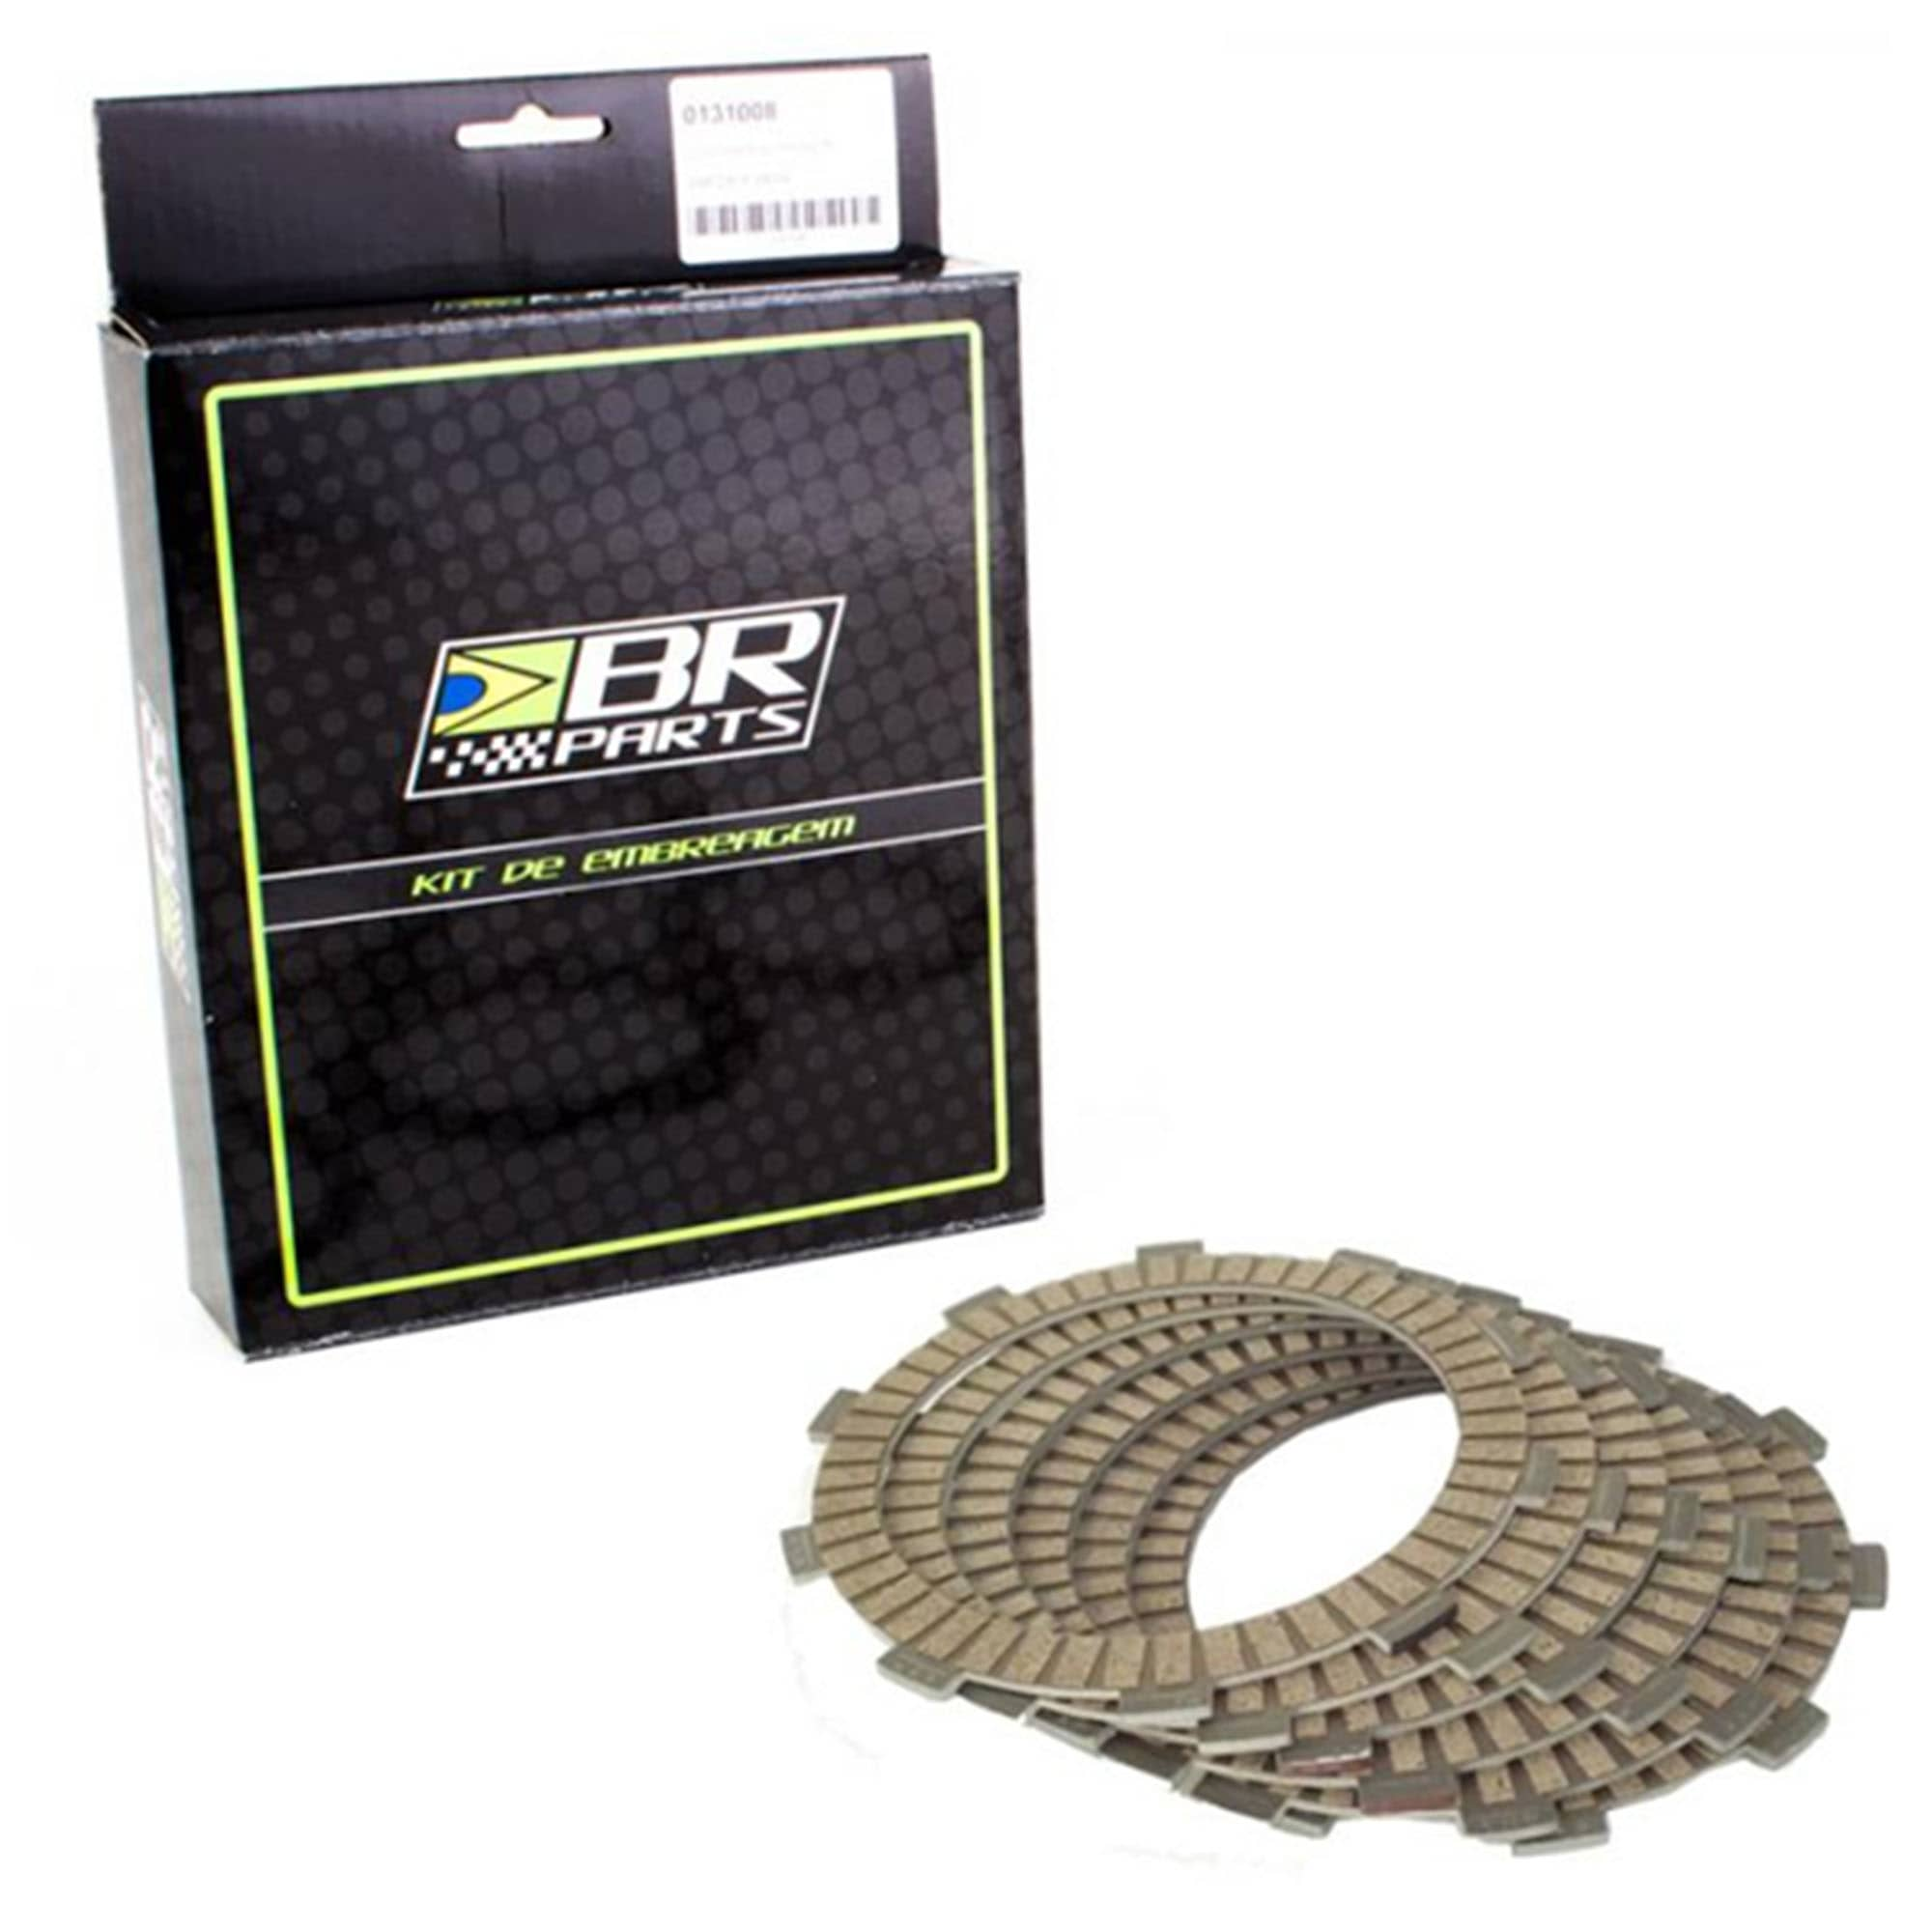 Kit de Disco de Embreagem + Separadores BR Parts YZF 250 e WRF 250 01/13  - HP Race Off Road